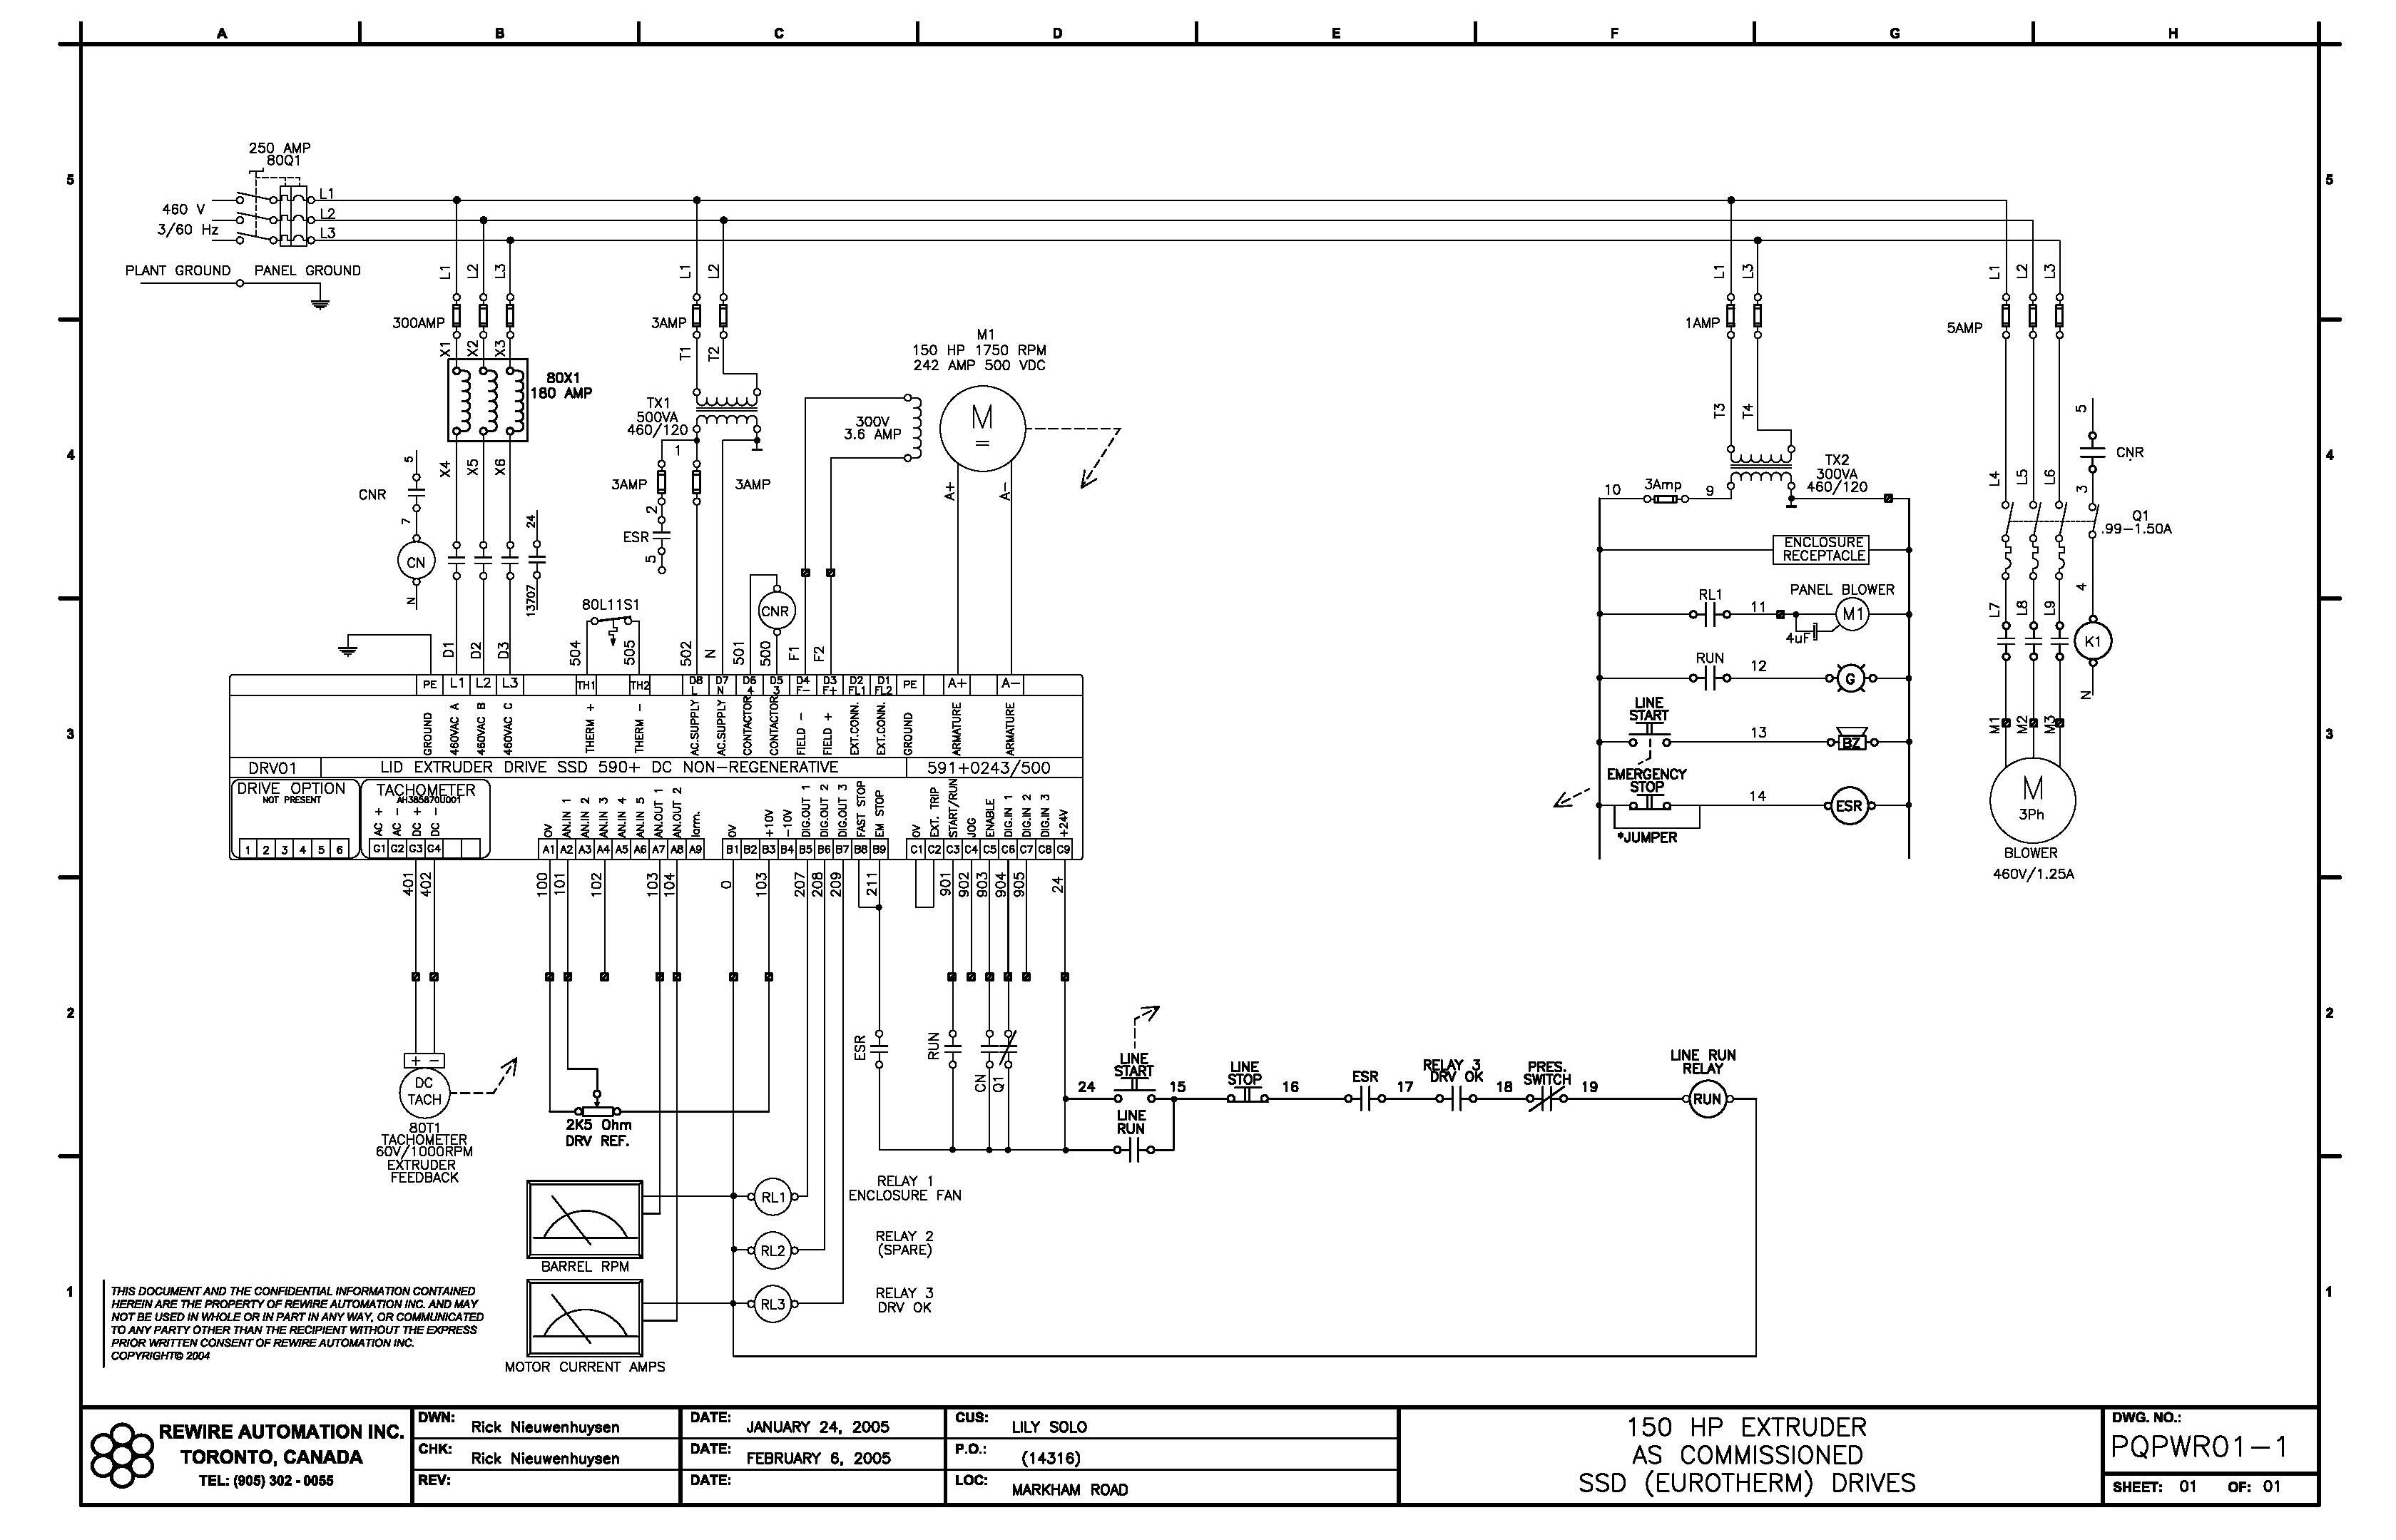 Rewire automation inc electrical drawings on electrical drawings Electrical Drawing Standards Examples Electrical Tape Art